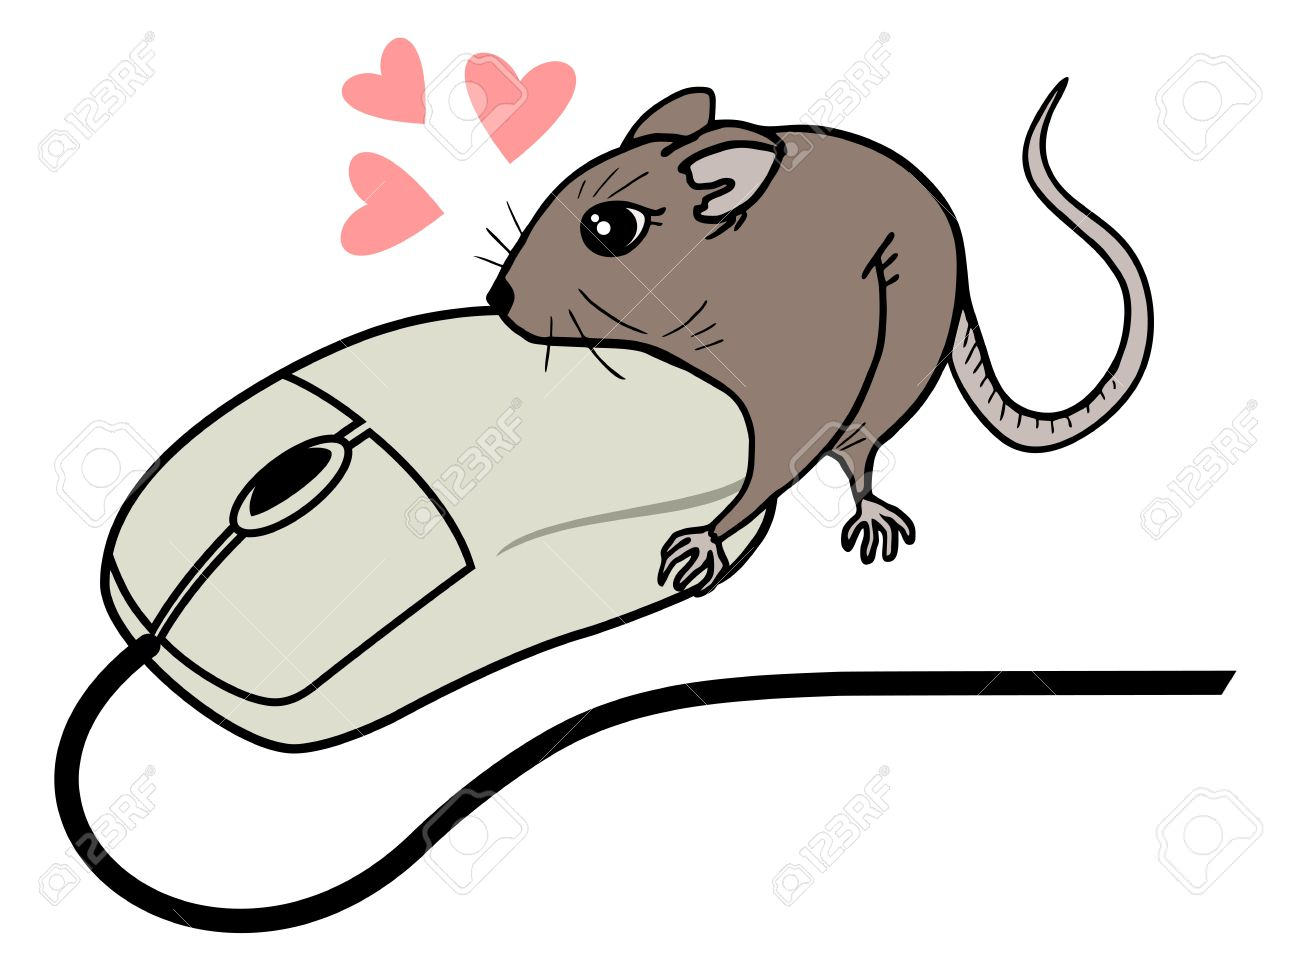 Funny Computer Mouse and Mouse Drawing